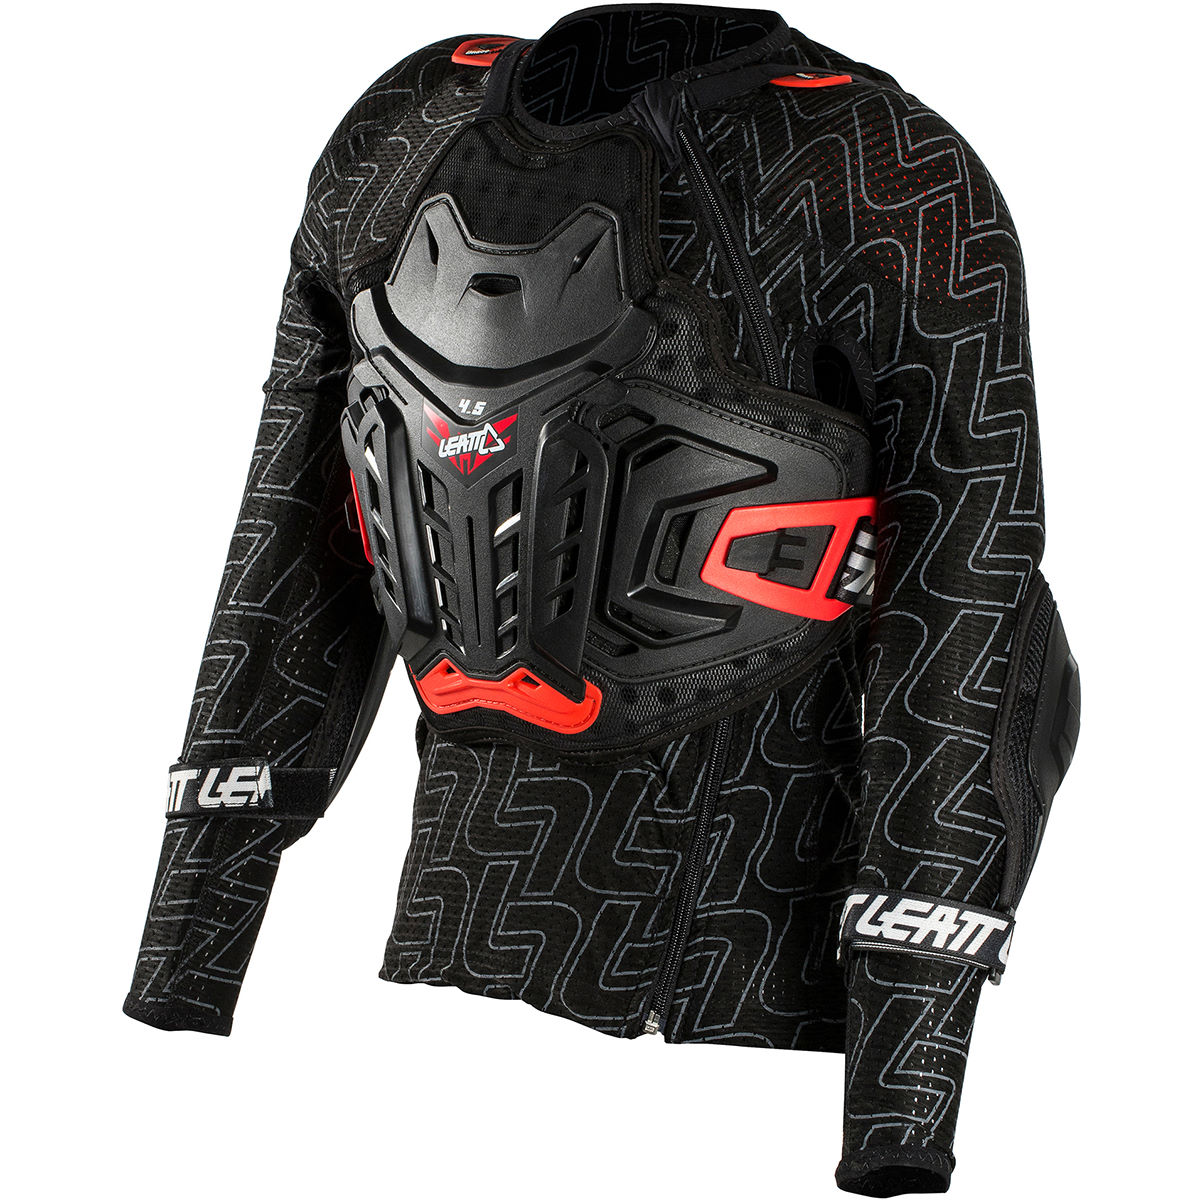 Leatt Leatt Junior Body Protector 4.5   Body Protectors